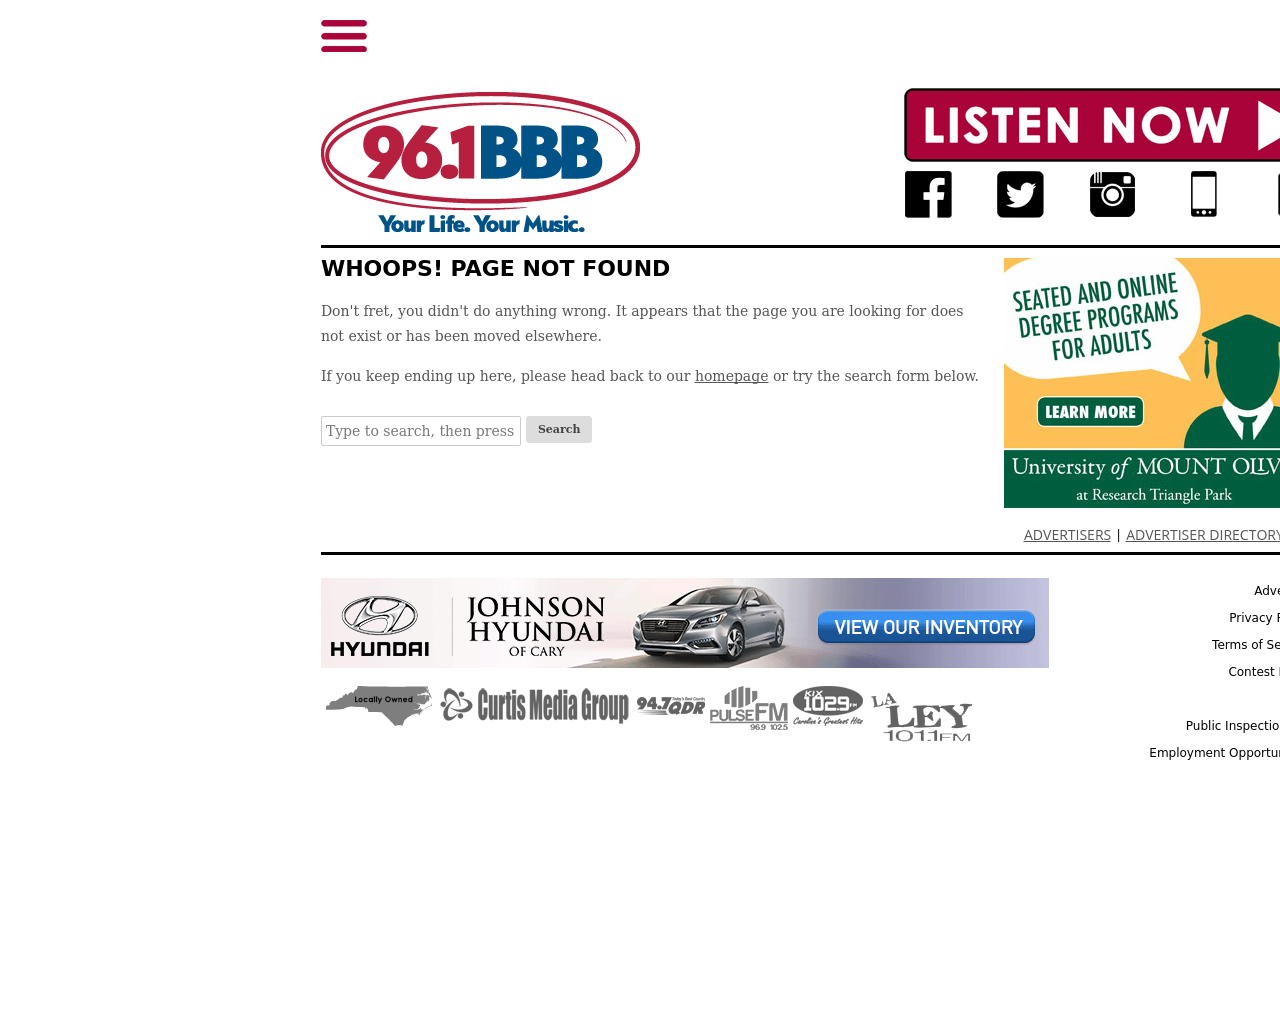 WBBB-FM-Advertising-Reviews-Pricing